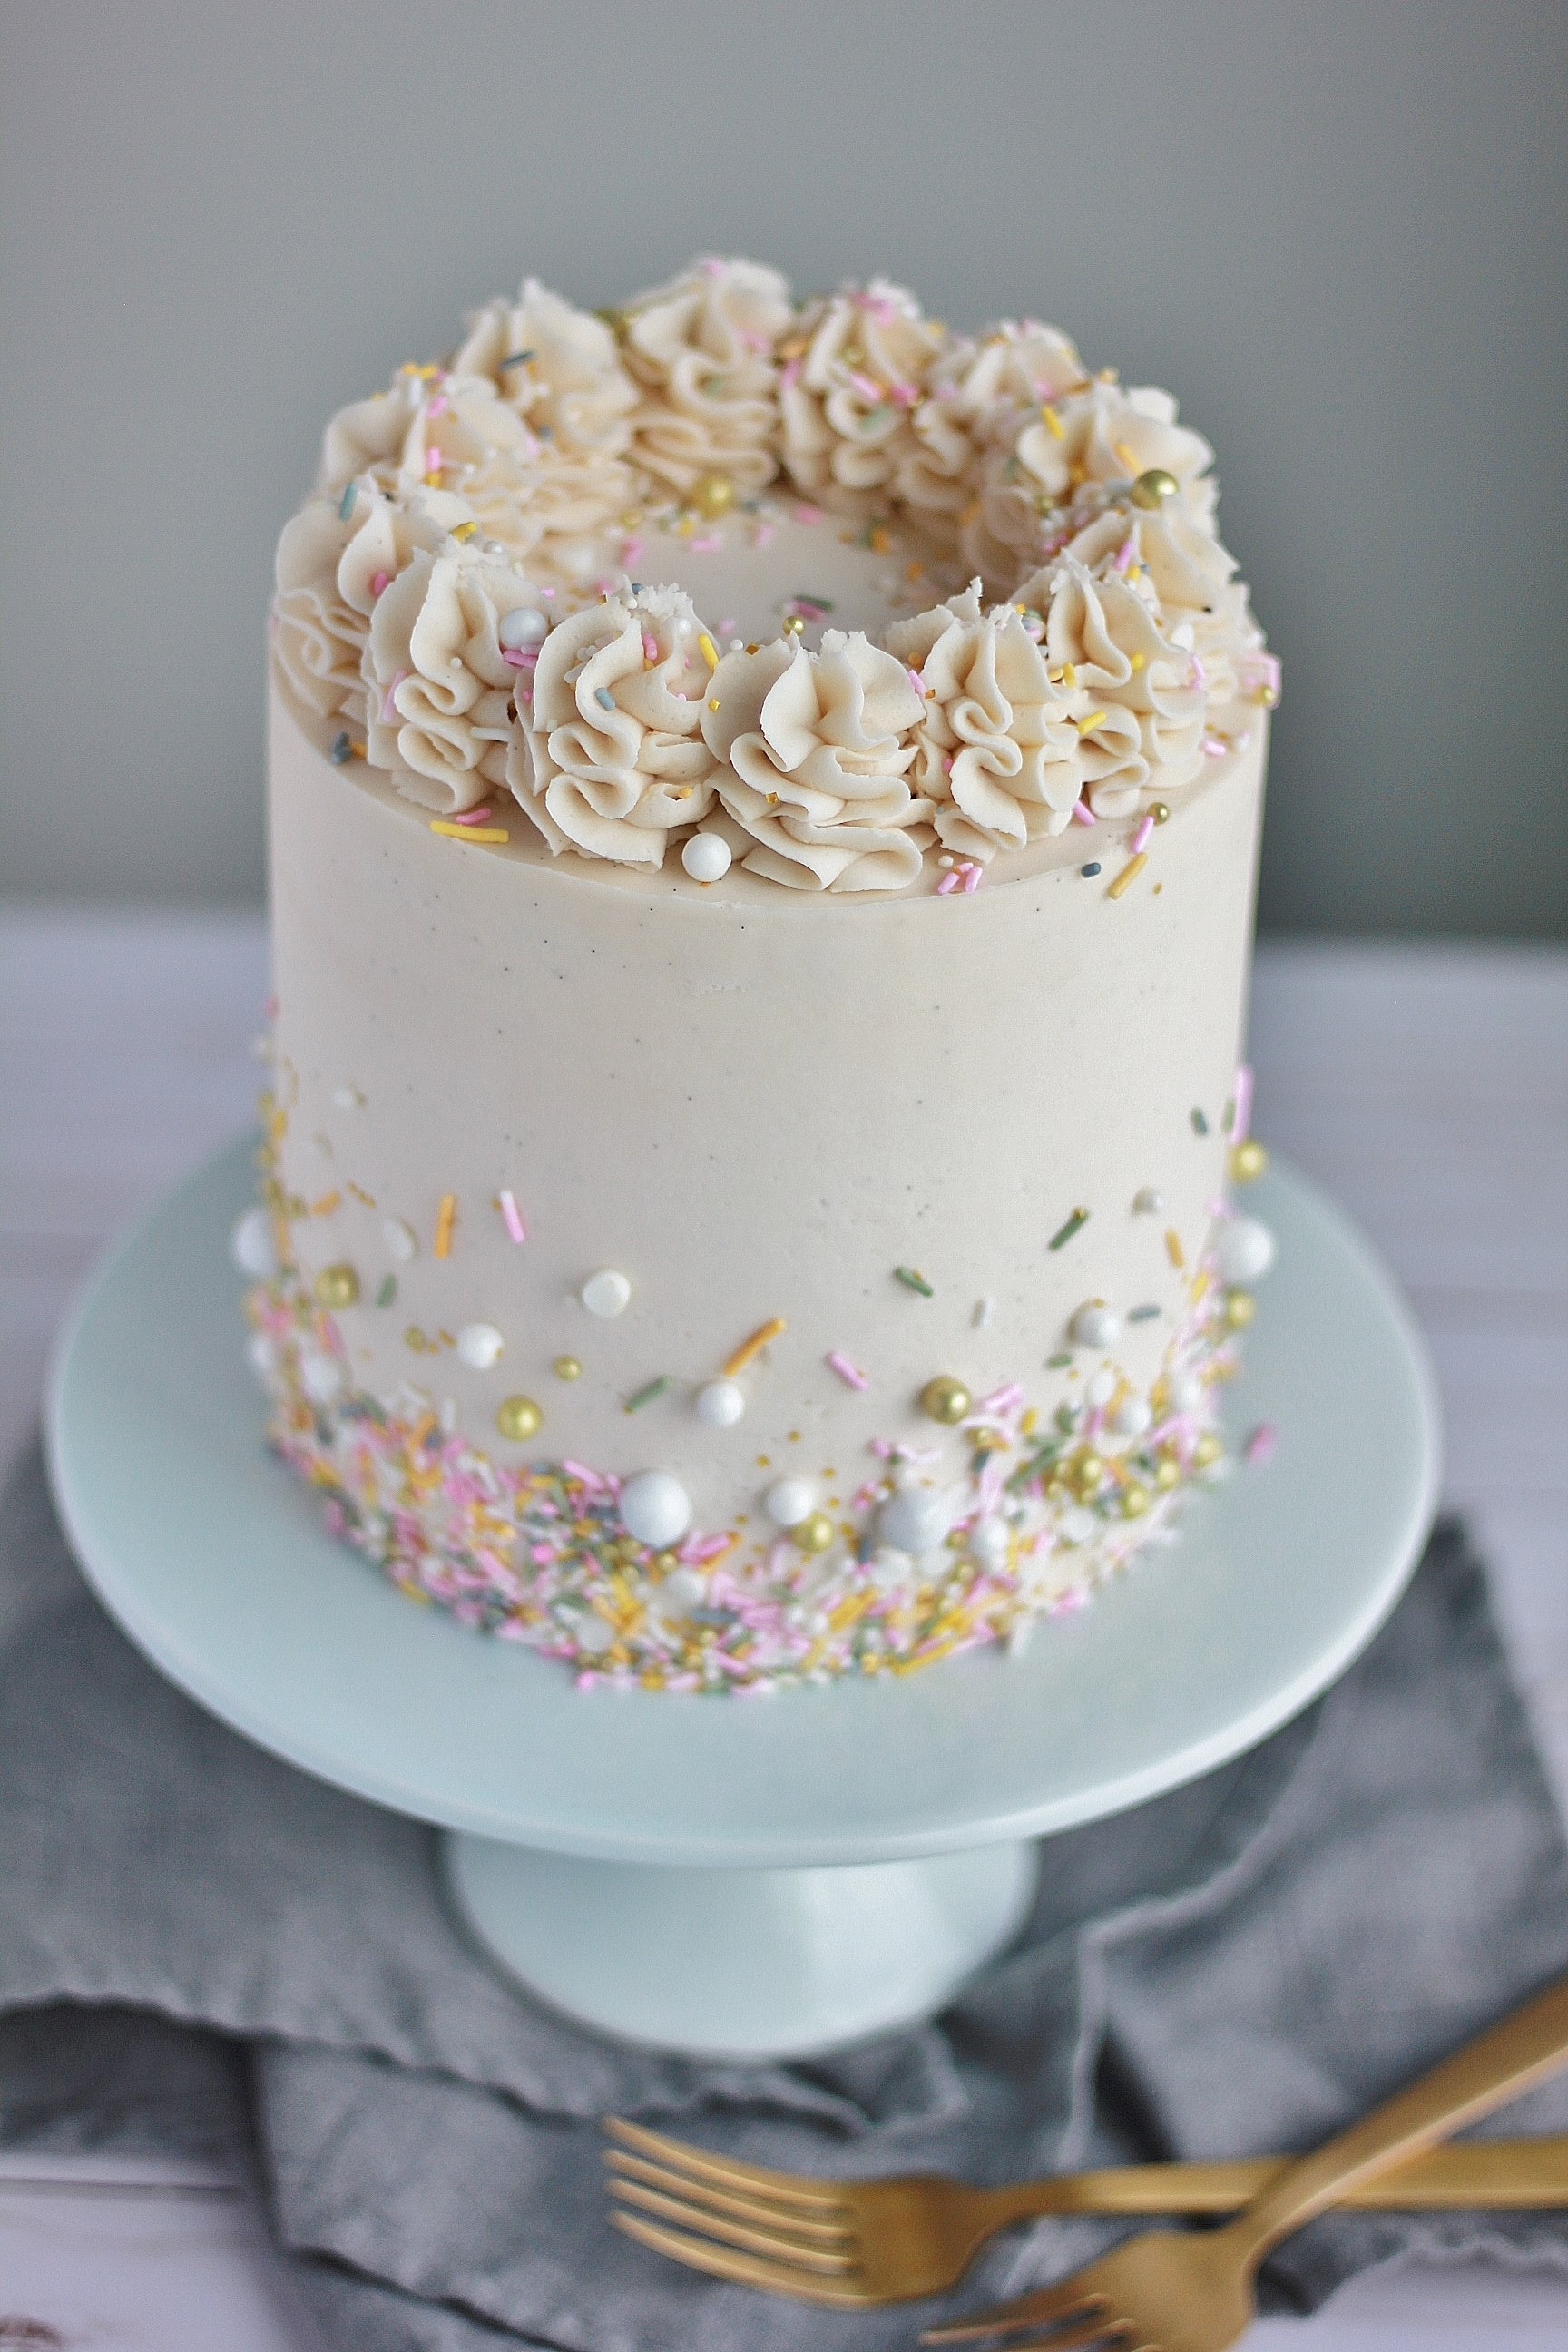 Vanilla Bean Buttercream Using Paste AND Creating An Almost Ice Cream Taste Along With The Classic American